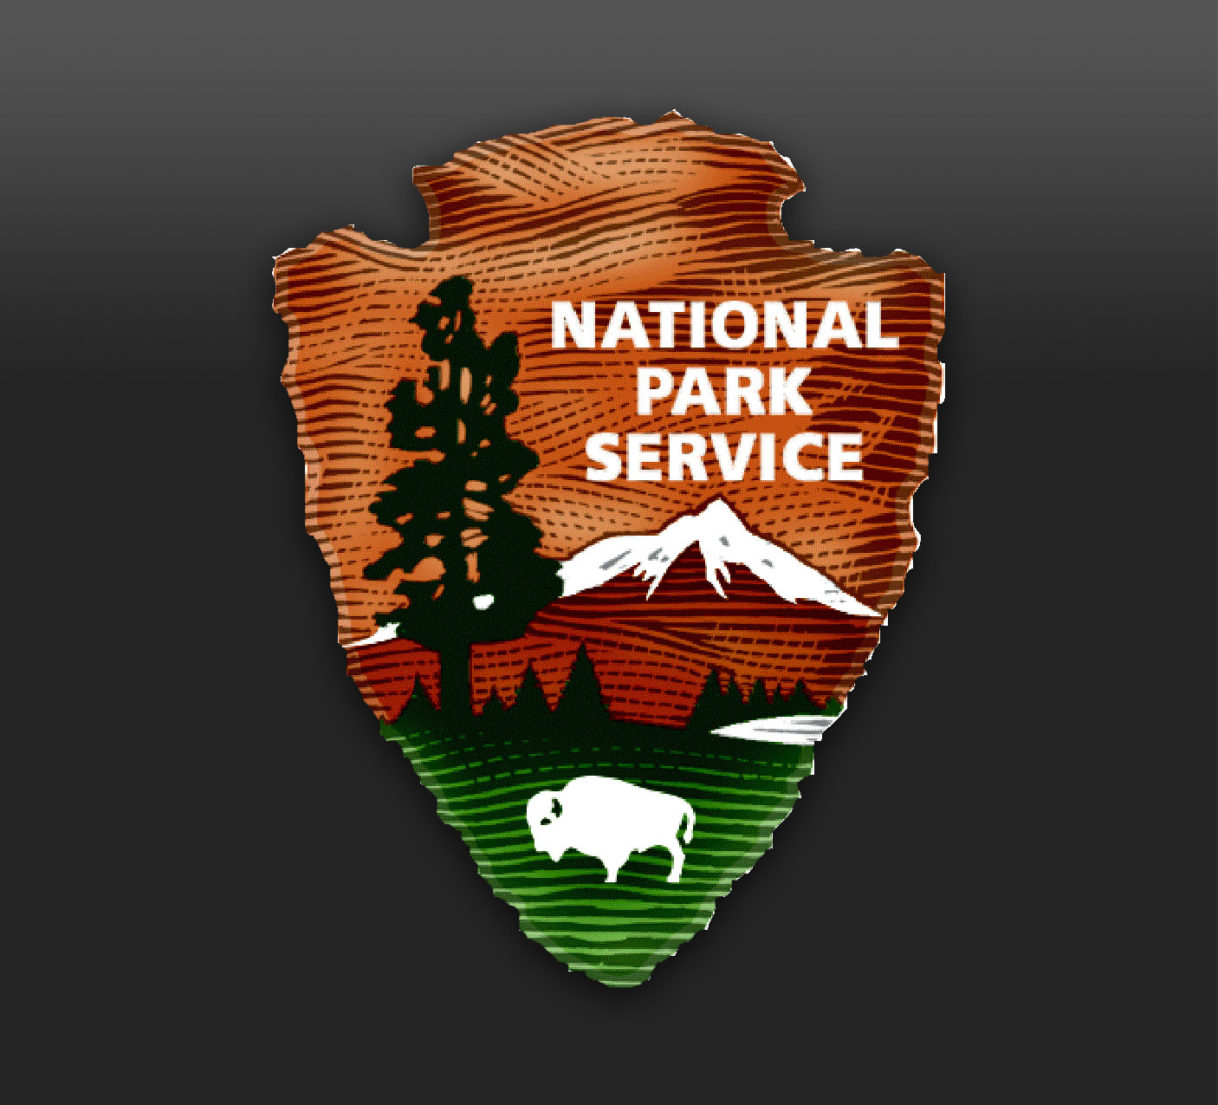 National Parks in Alphabetical Order by State